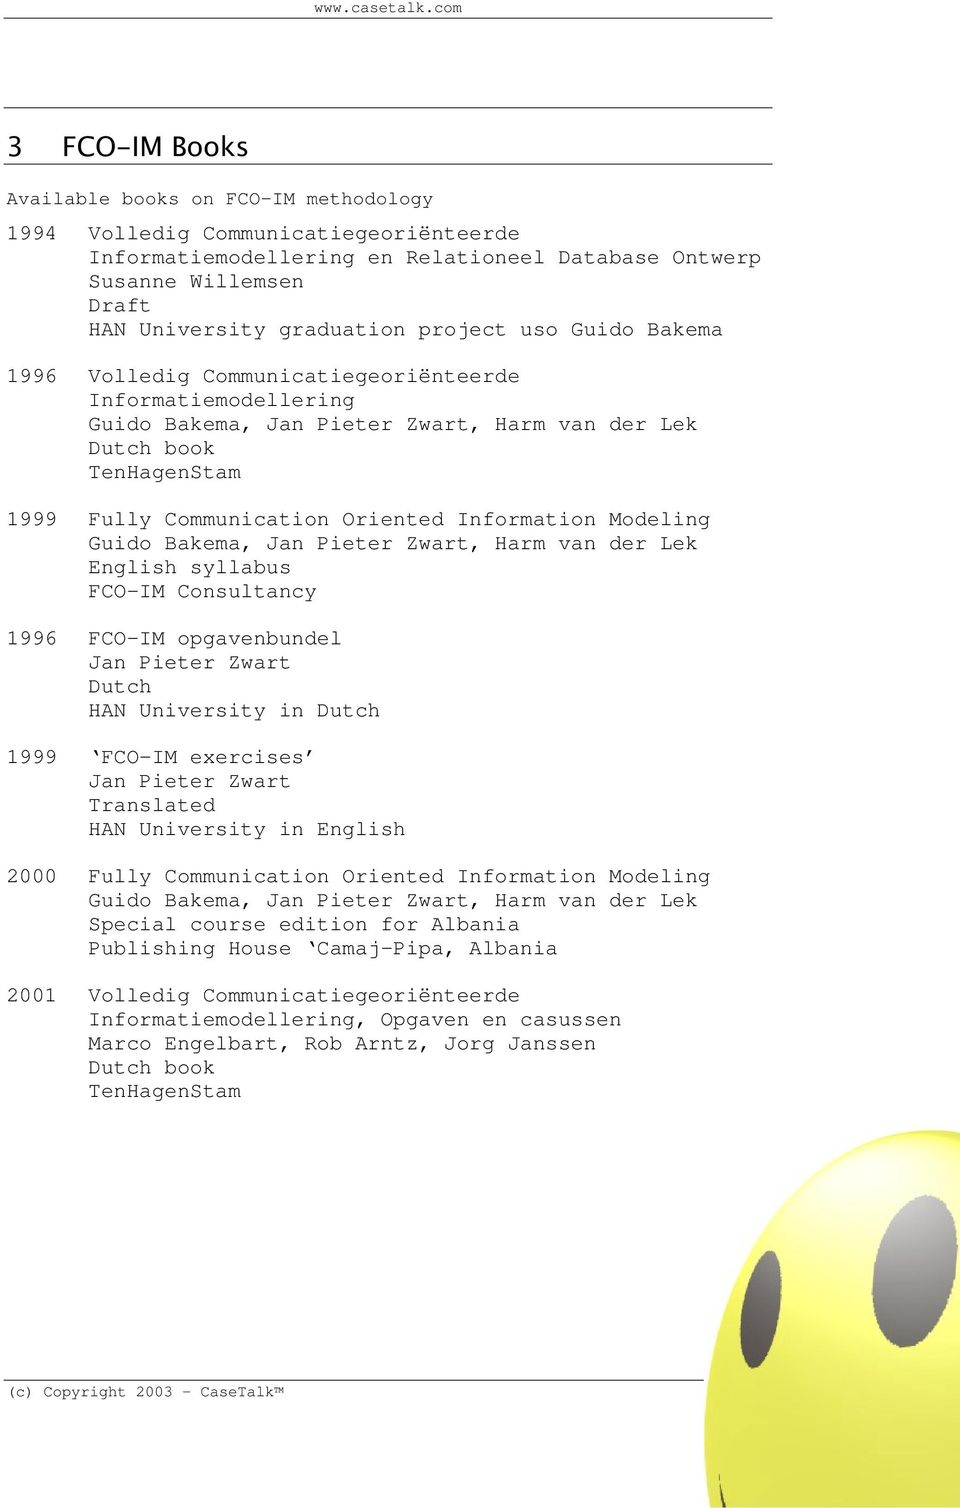 Information Modeling Guido Bakema, Jan Pieter Zwart, Harm van der Lek English syllabus FCO-IM Consultancy 1996 FCO-IM opgavenbundel Jan Pieter Zwart Dutch HAN University in Dutch 1999 FCO-IM